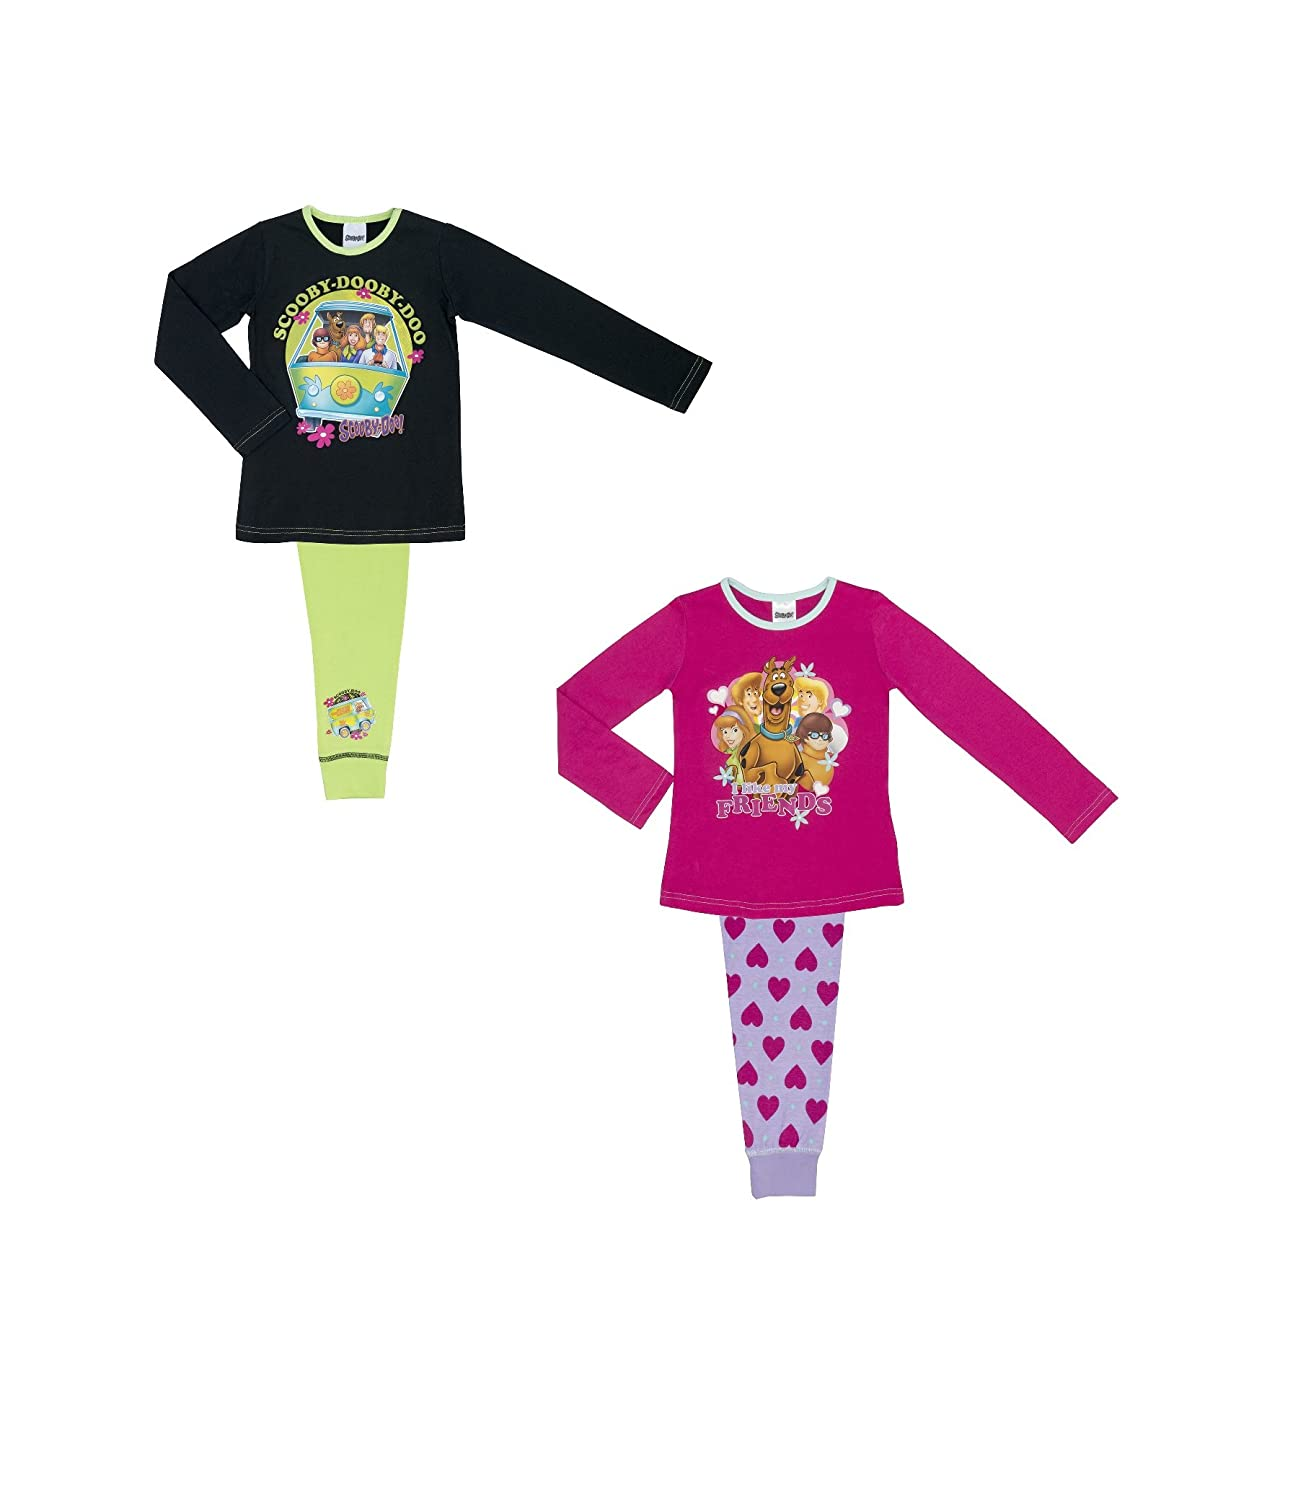 91ac2a2830 Cartoon Character Products 2 Pack Warner Brothers Scooby Doo Girls Pyjamas  - 5-10 - 4-5 Years   104-110 cms  Amazon.ca  Clothing   Accessories